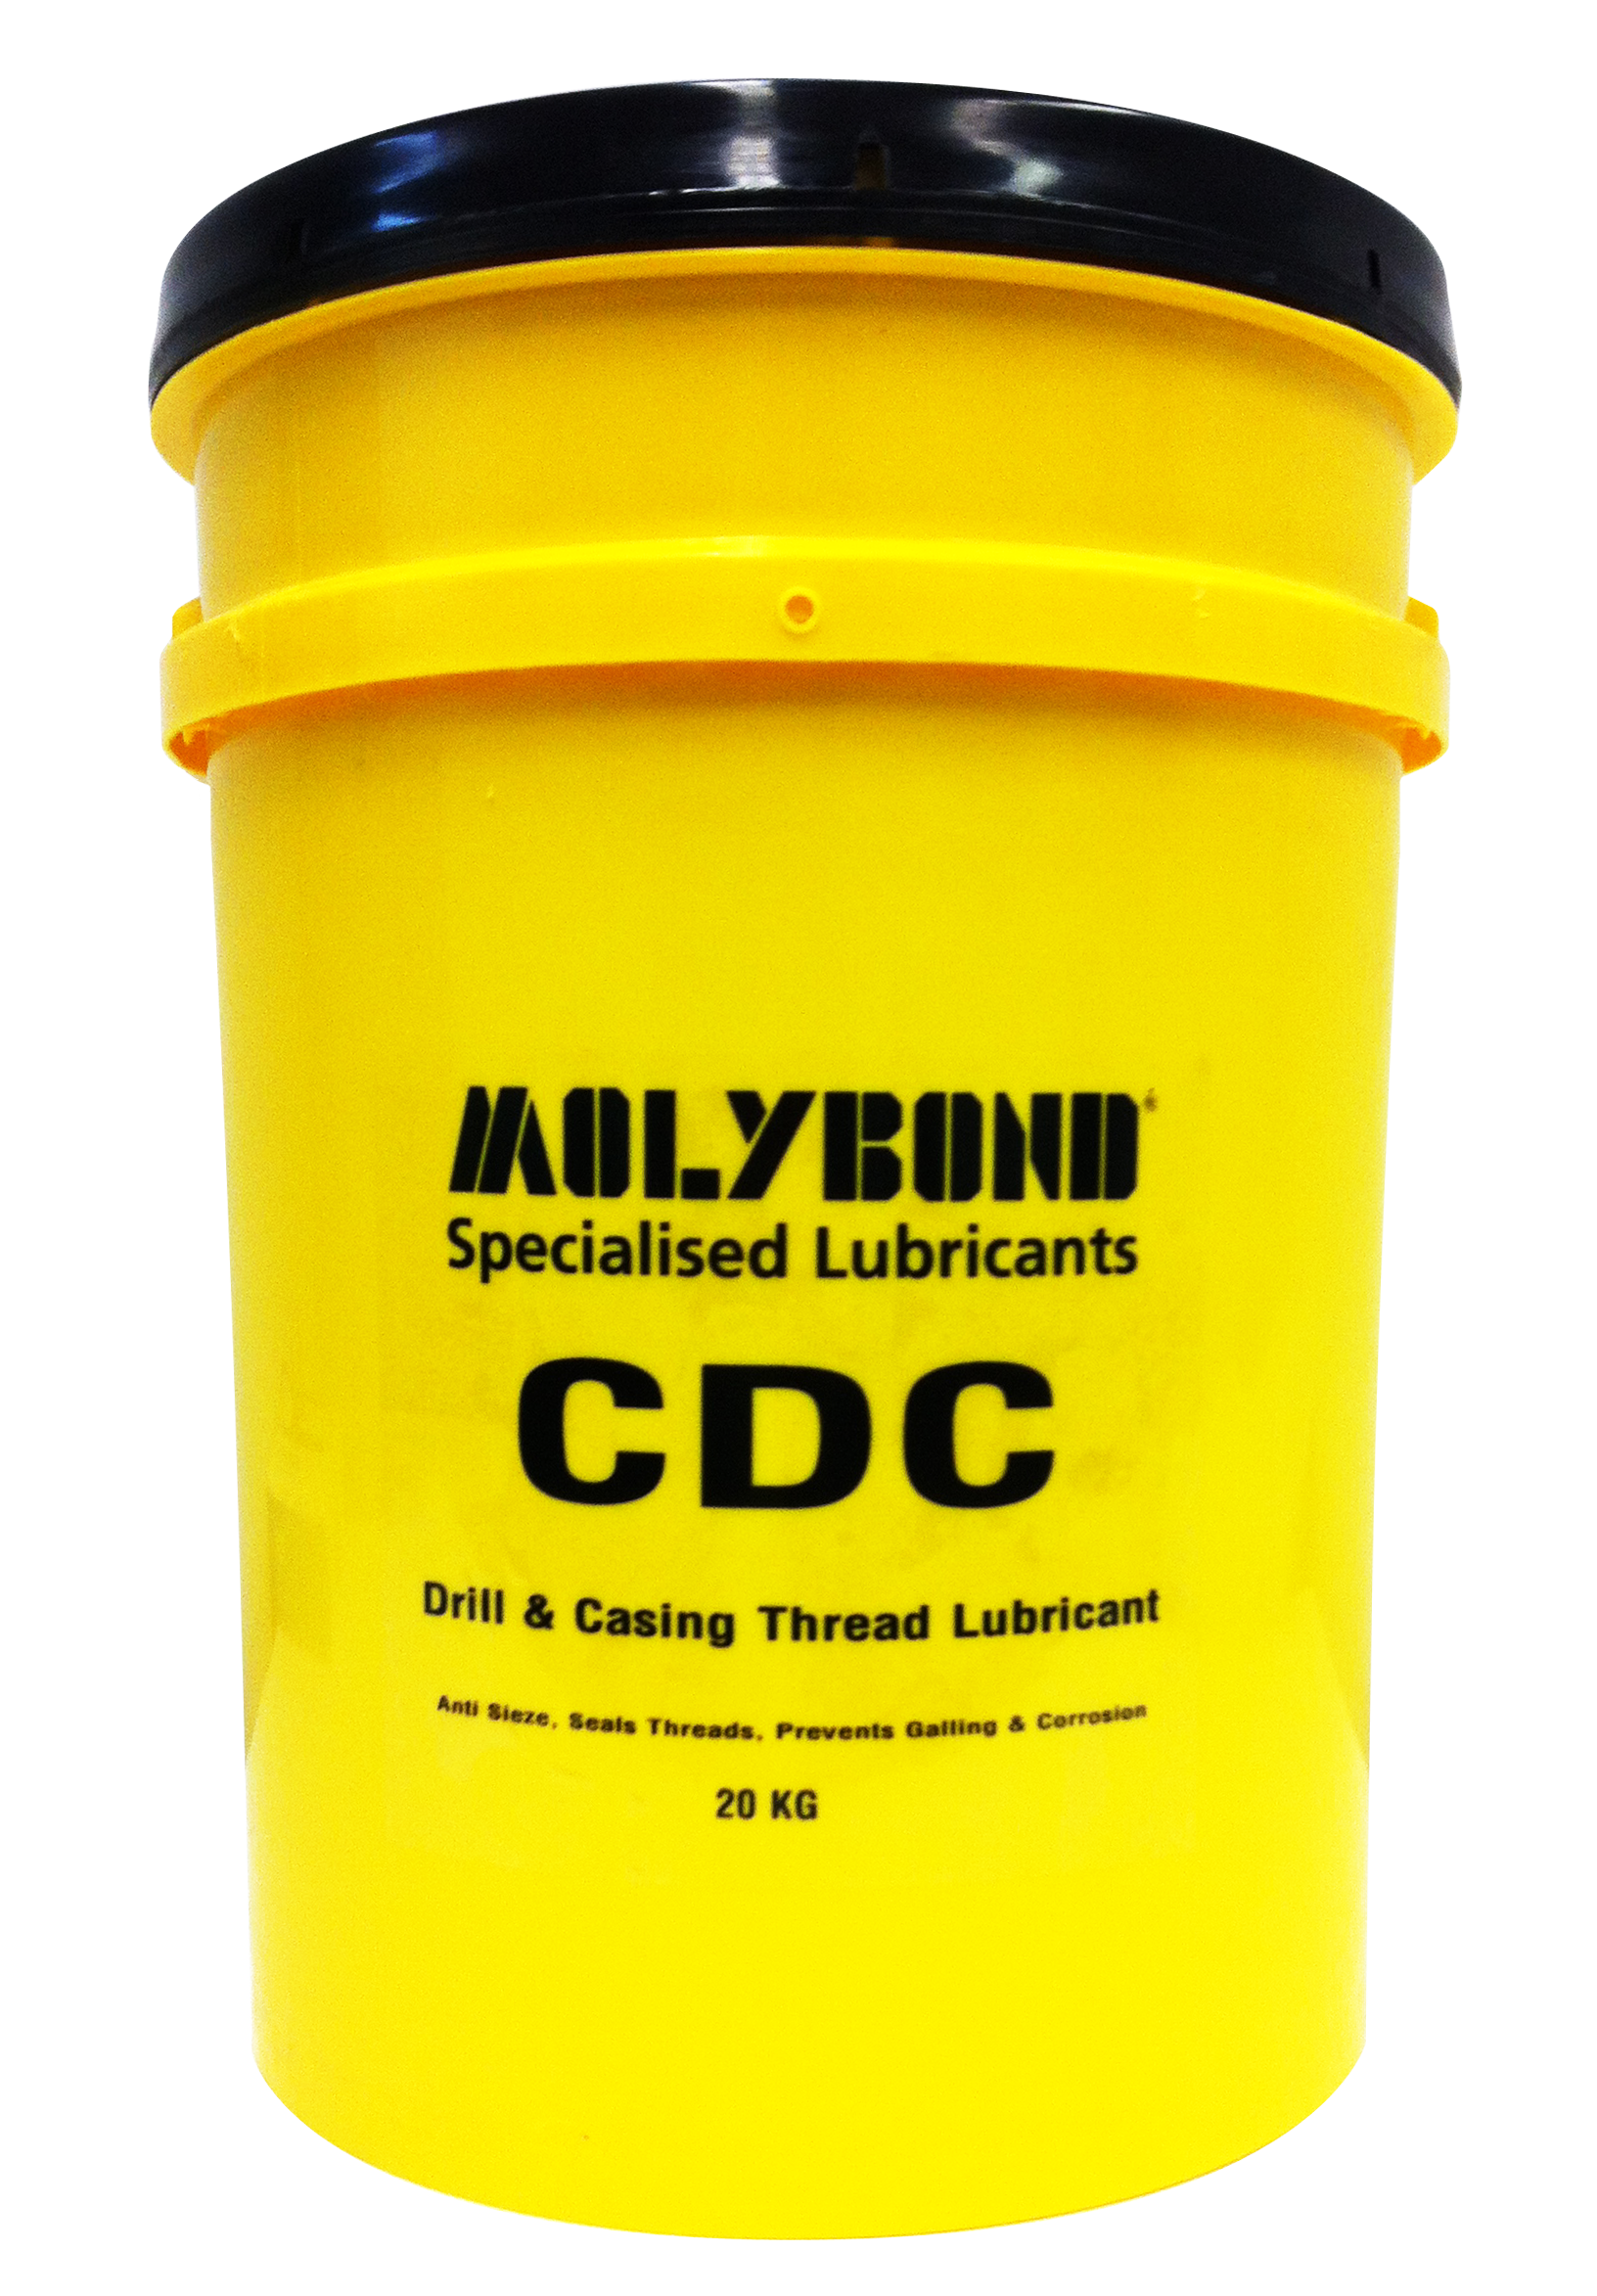 CDC Drill & Casing Thread Lubricant